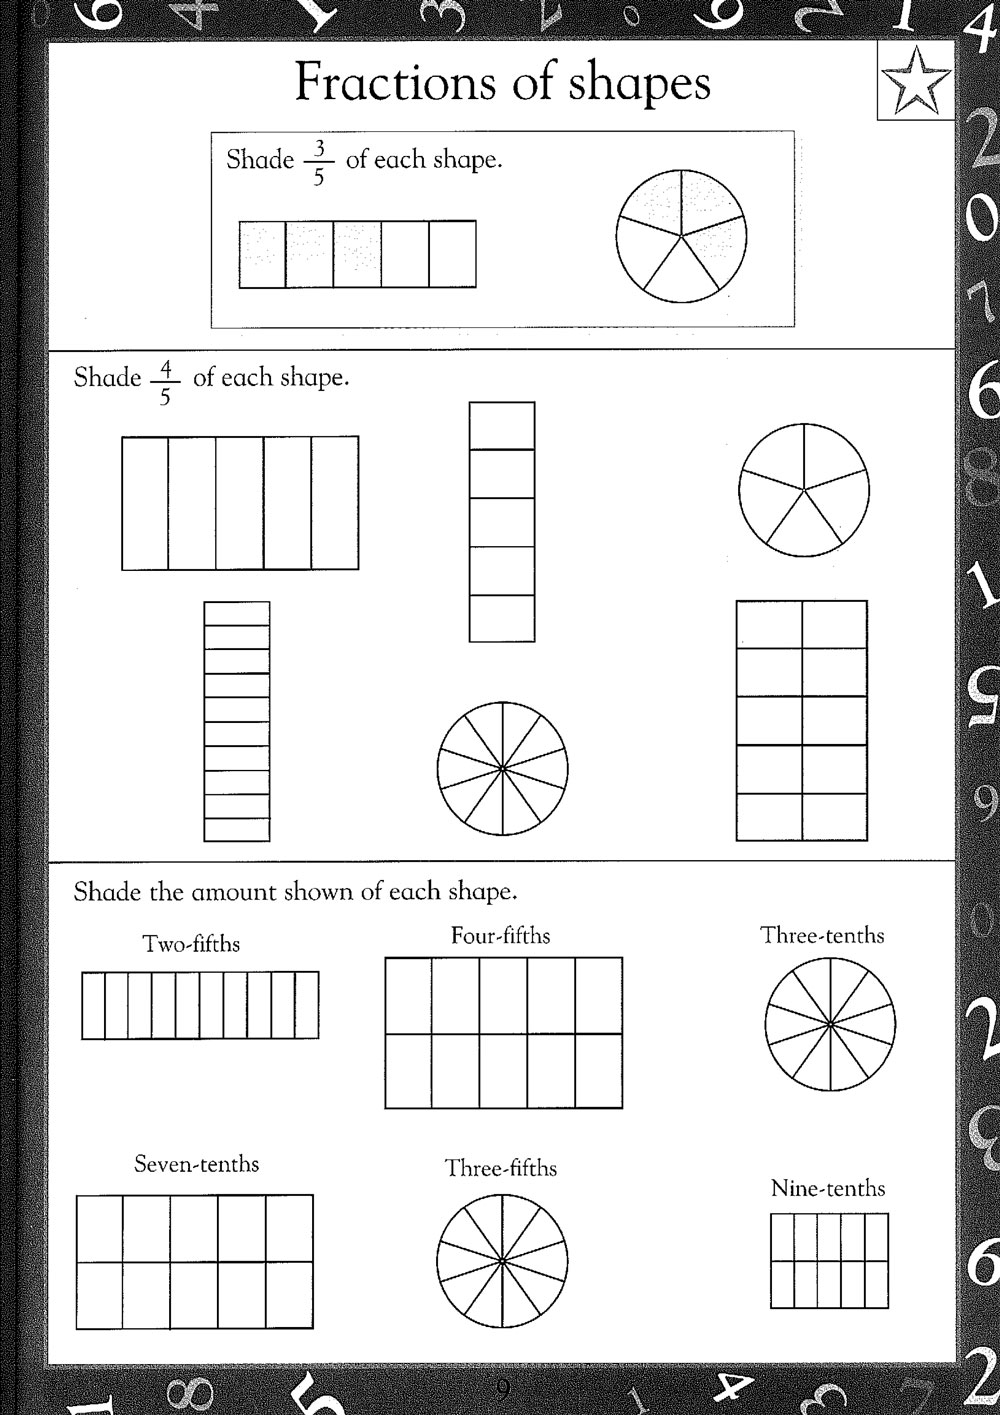 Free printable maths worksheets – Key Stage 2 Year 3 Maths Worksheets